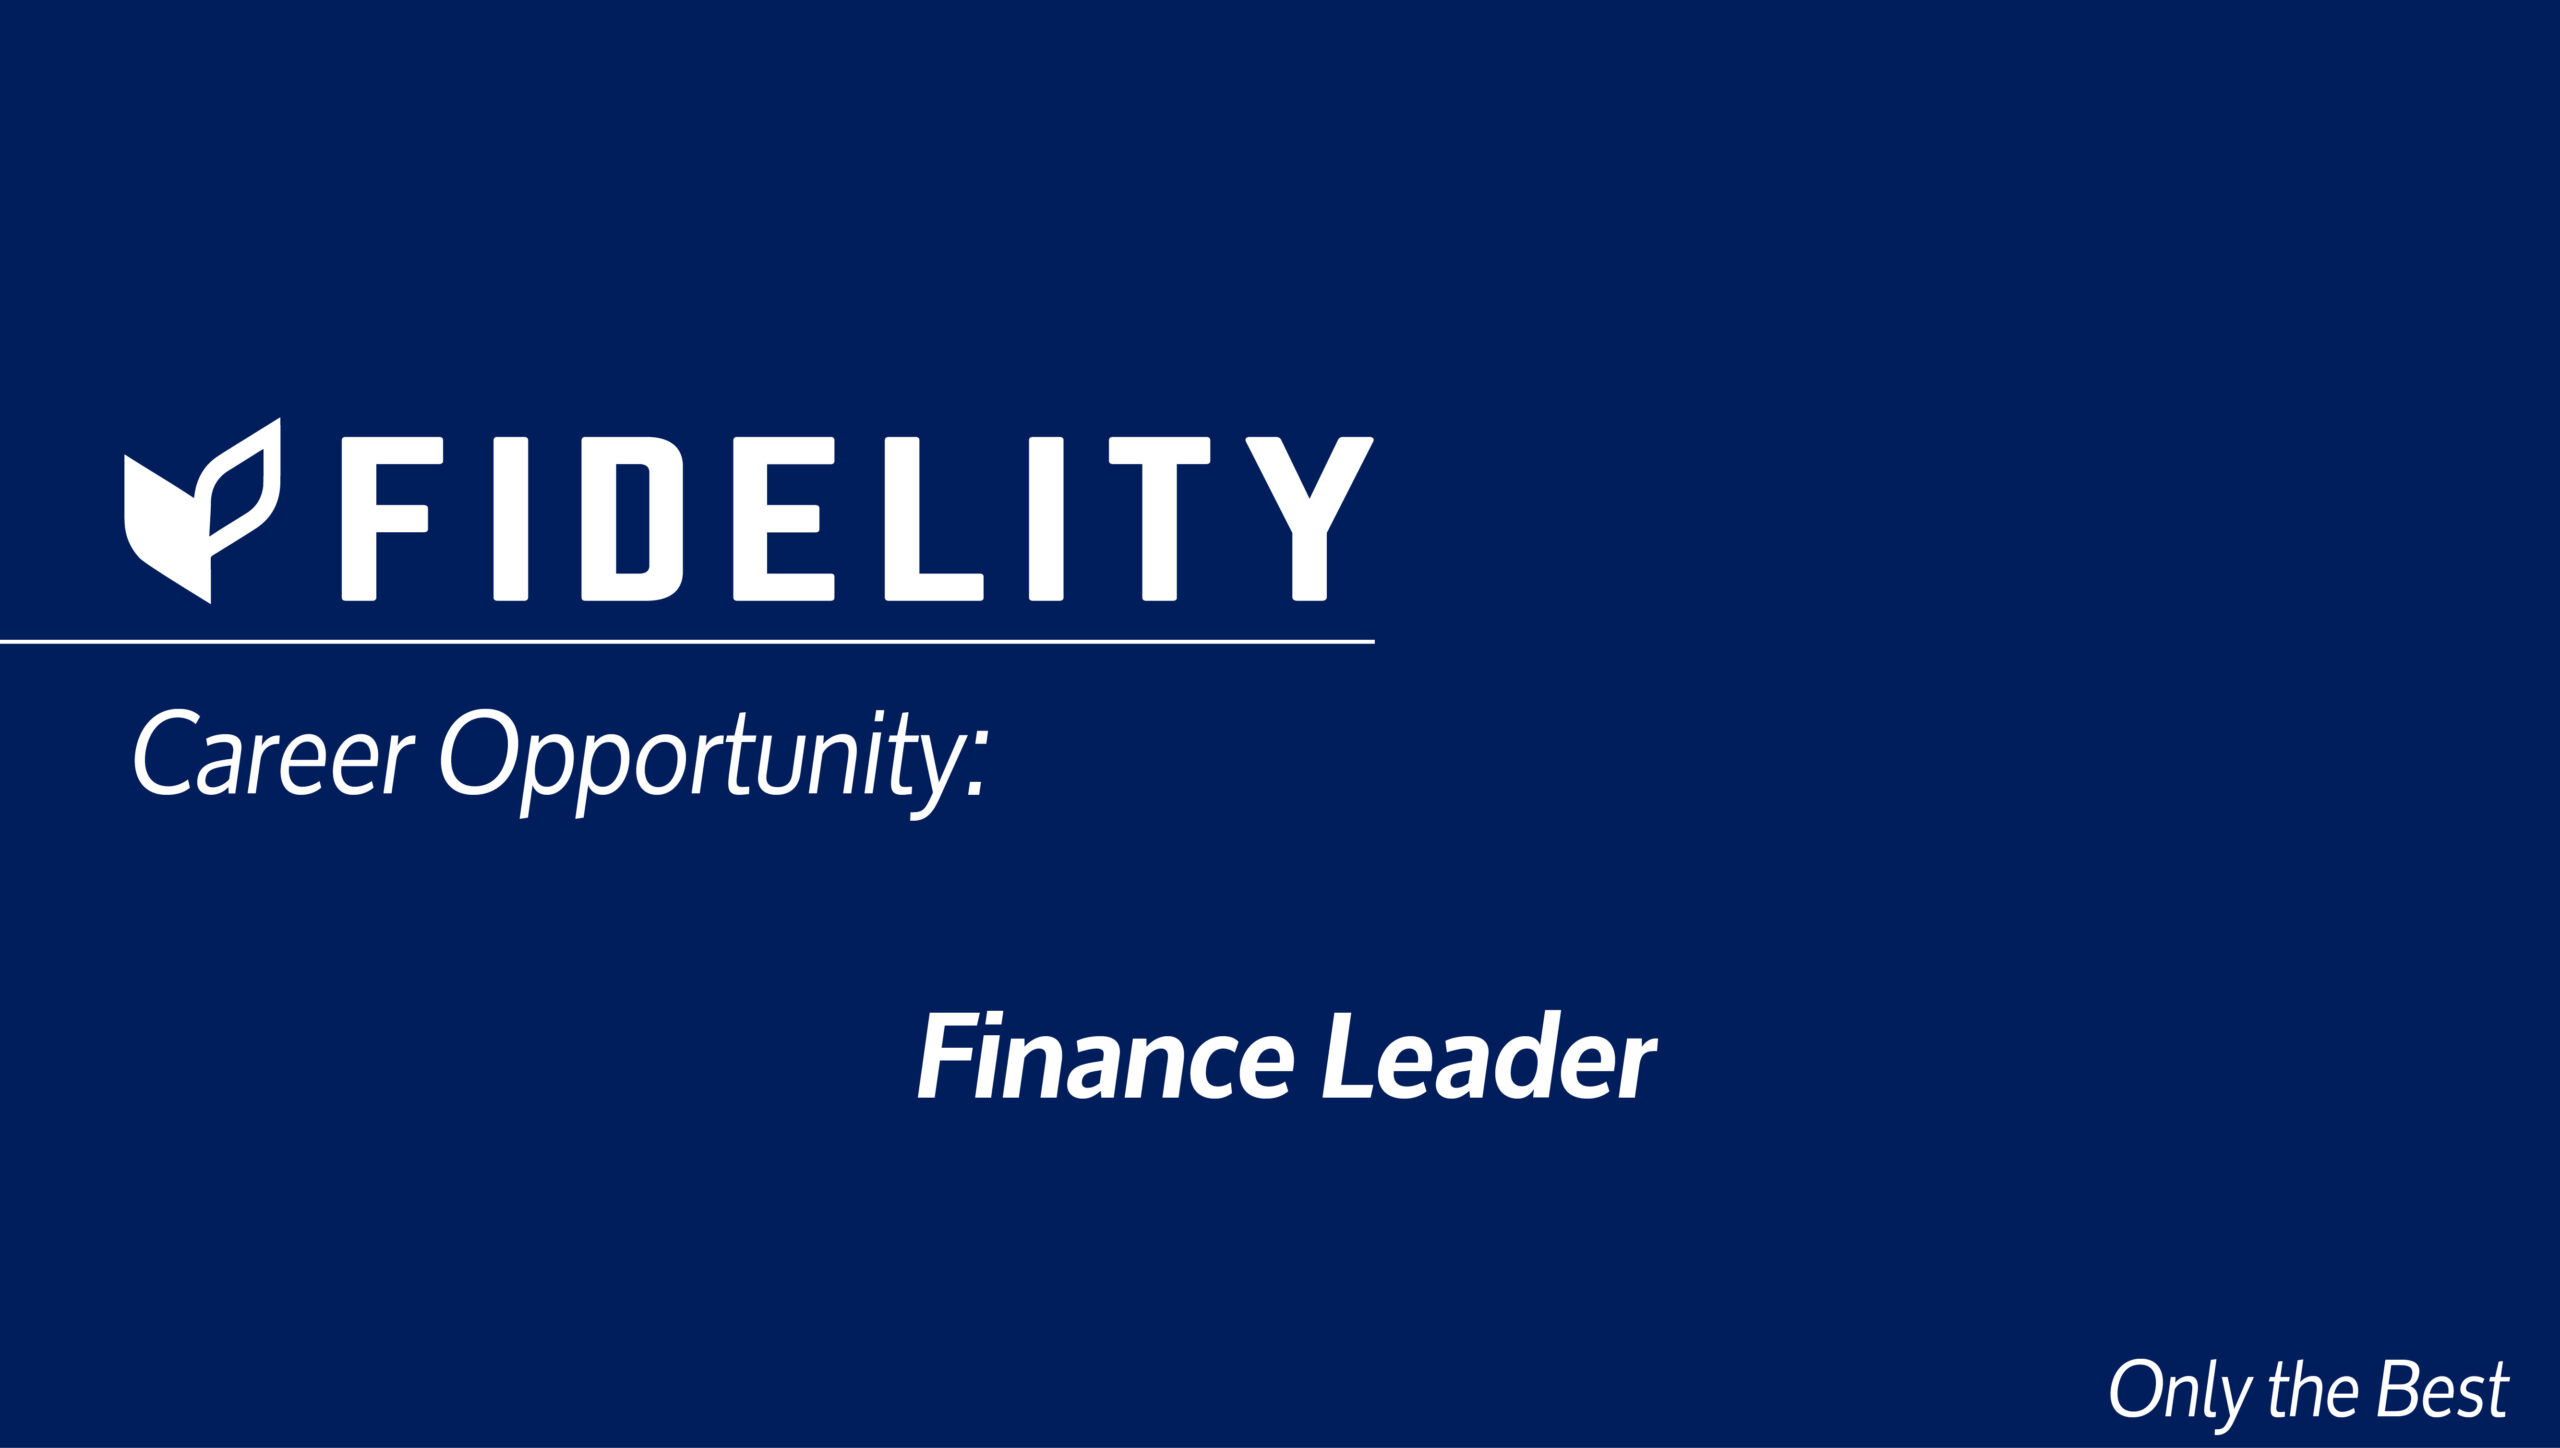 Career Opportunity: Finance Leader